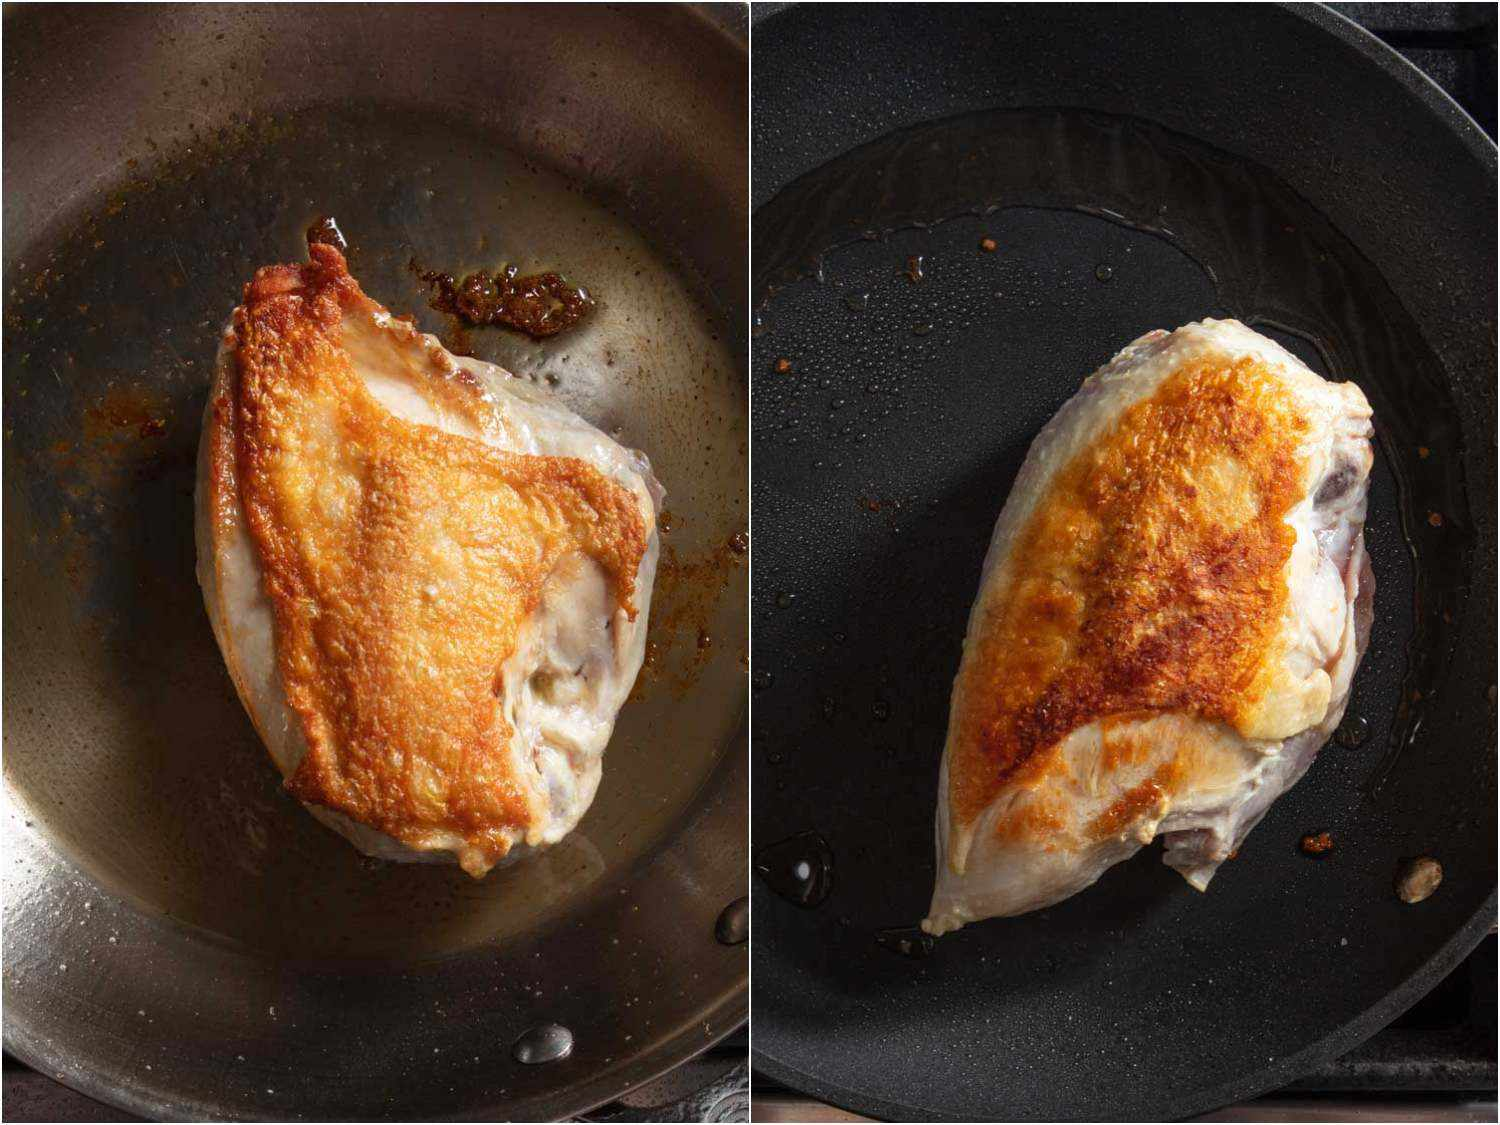 Seen from above, two samples of chicken breast show the difference between stainless steel and nonstick pans: the breast cooked in the stainless skillet is browned from edge-to-edge, whereas the chicken cooked in the nonstick skillet does not have browning that extends to the edges